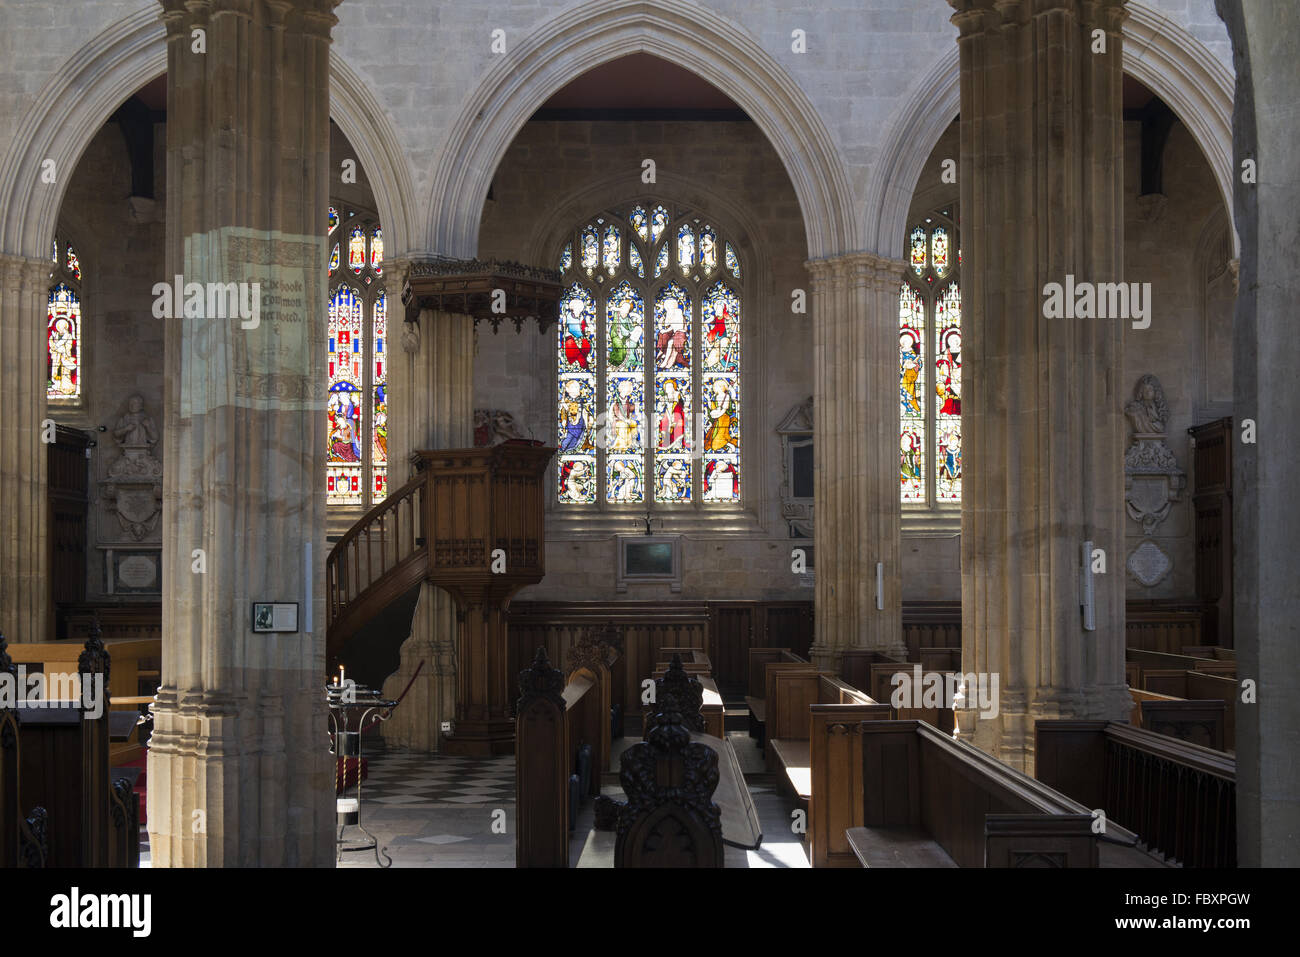 University Church of St. Mary in Oxford - Stock Image